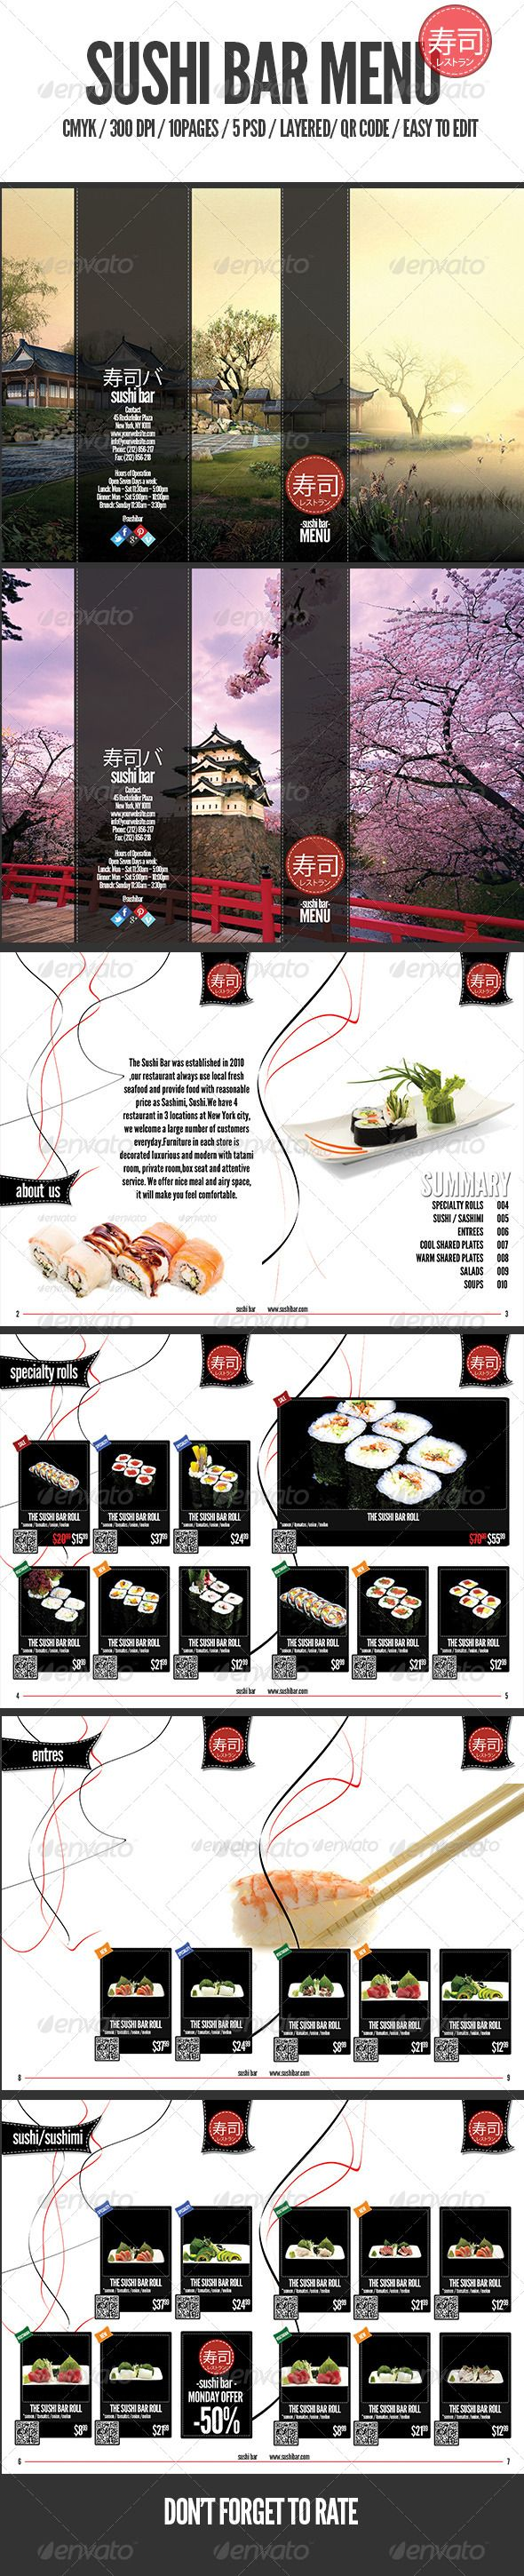 Sushi Bar Menu  Sushi Bar Menu Menu Templates And Print Templates